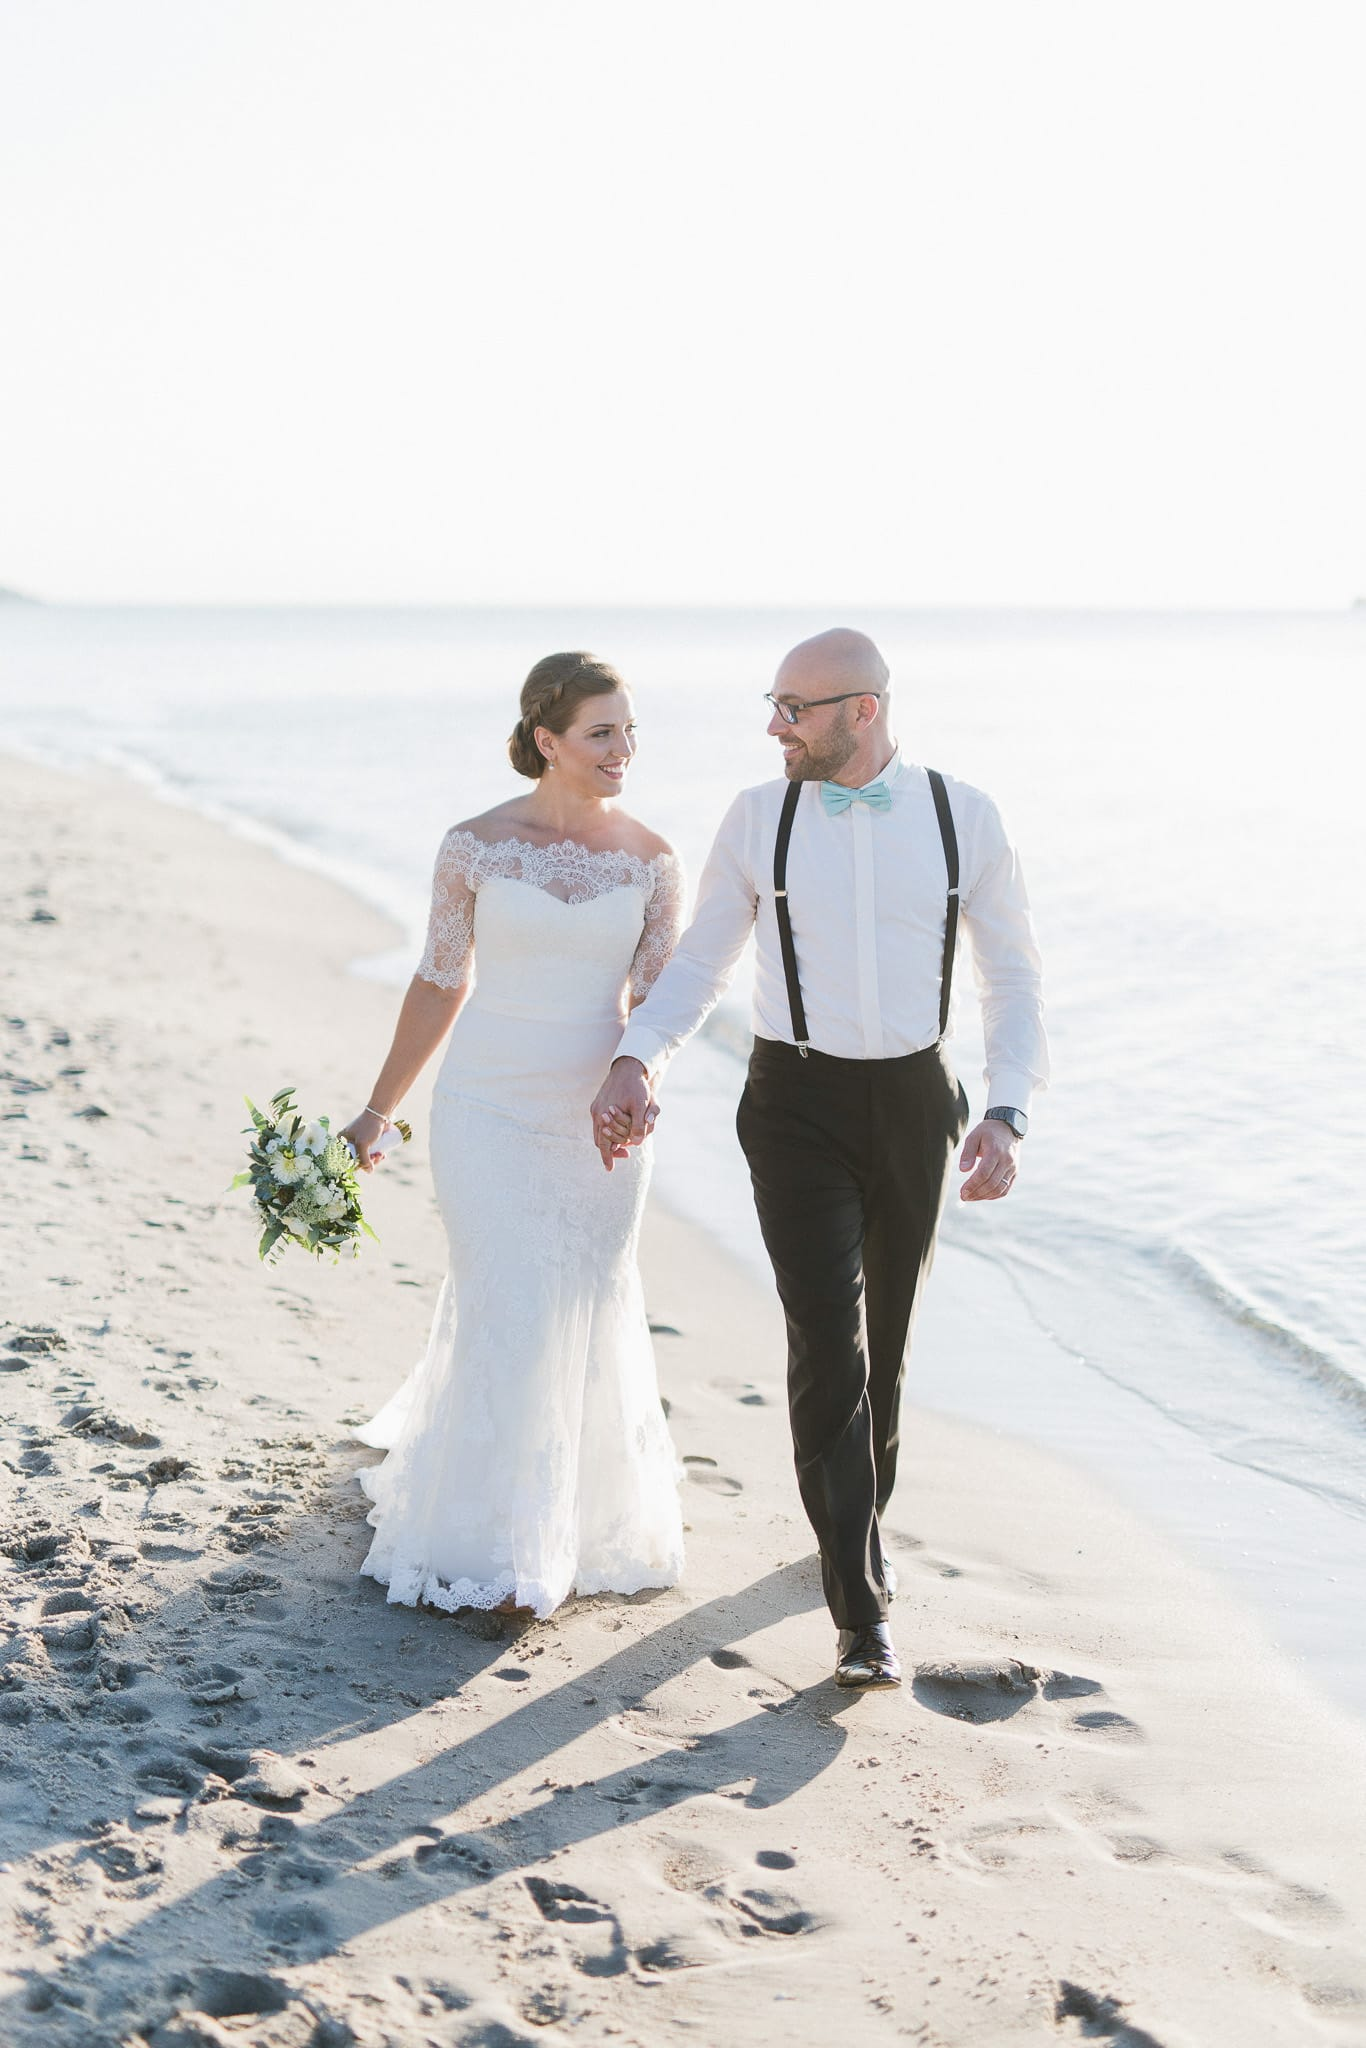 After Wedding Shooting Ostsee 18